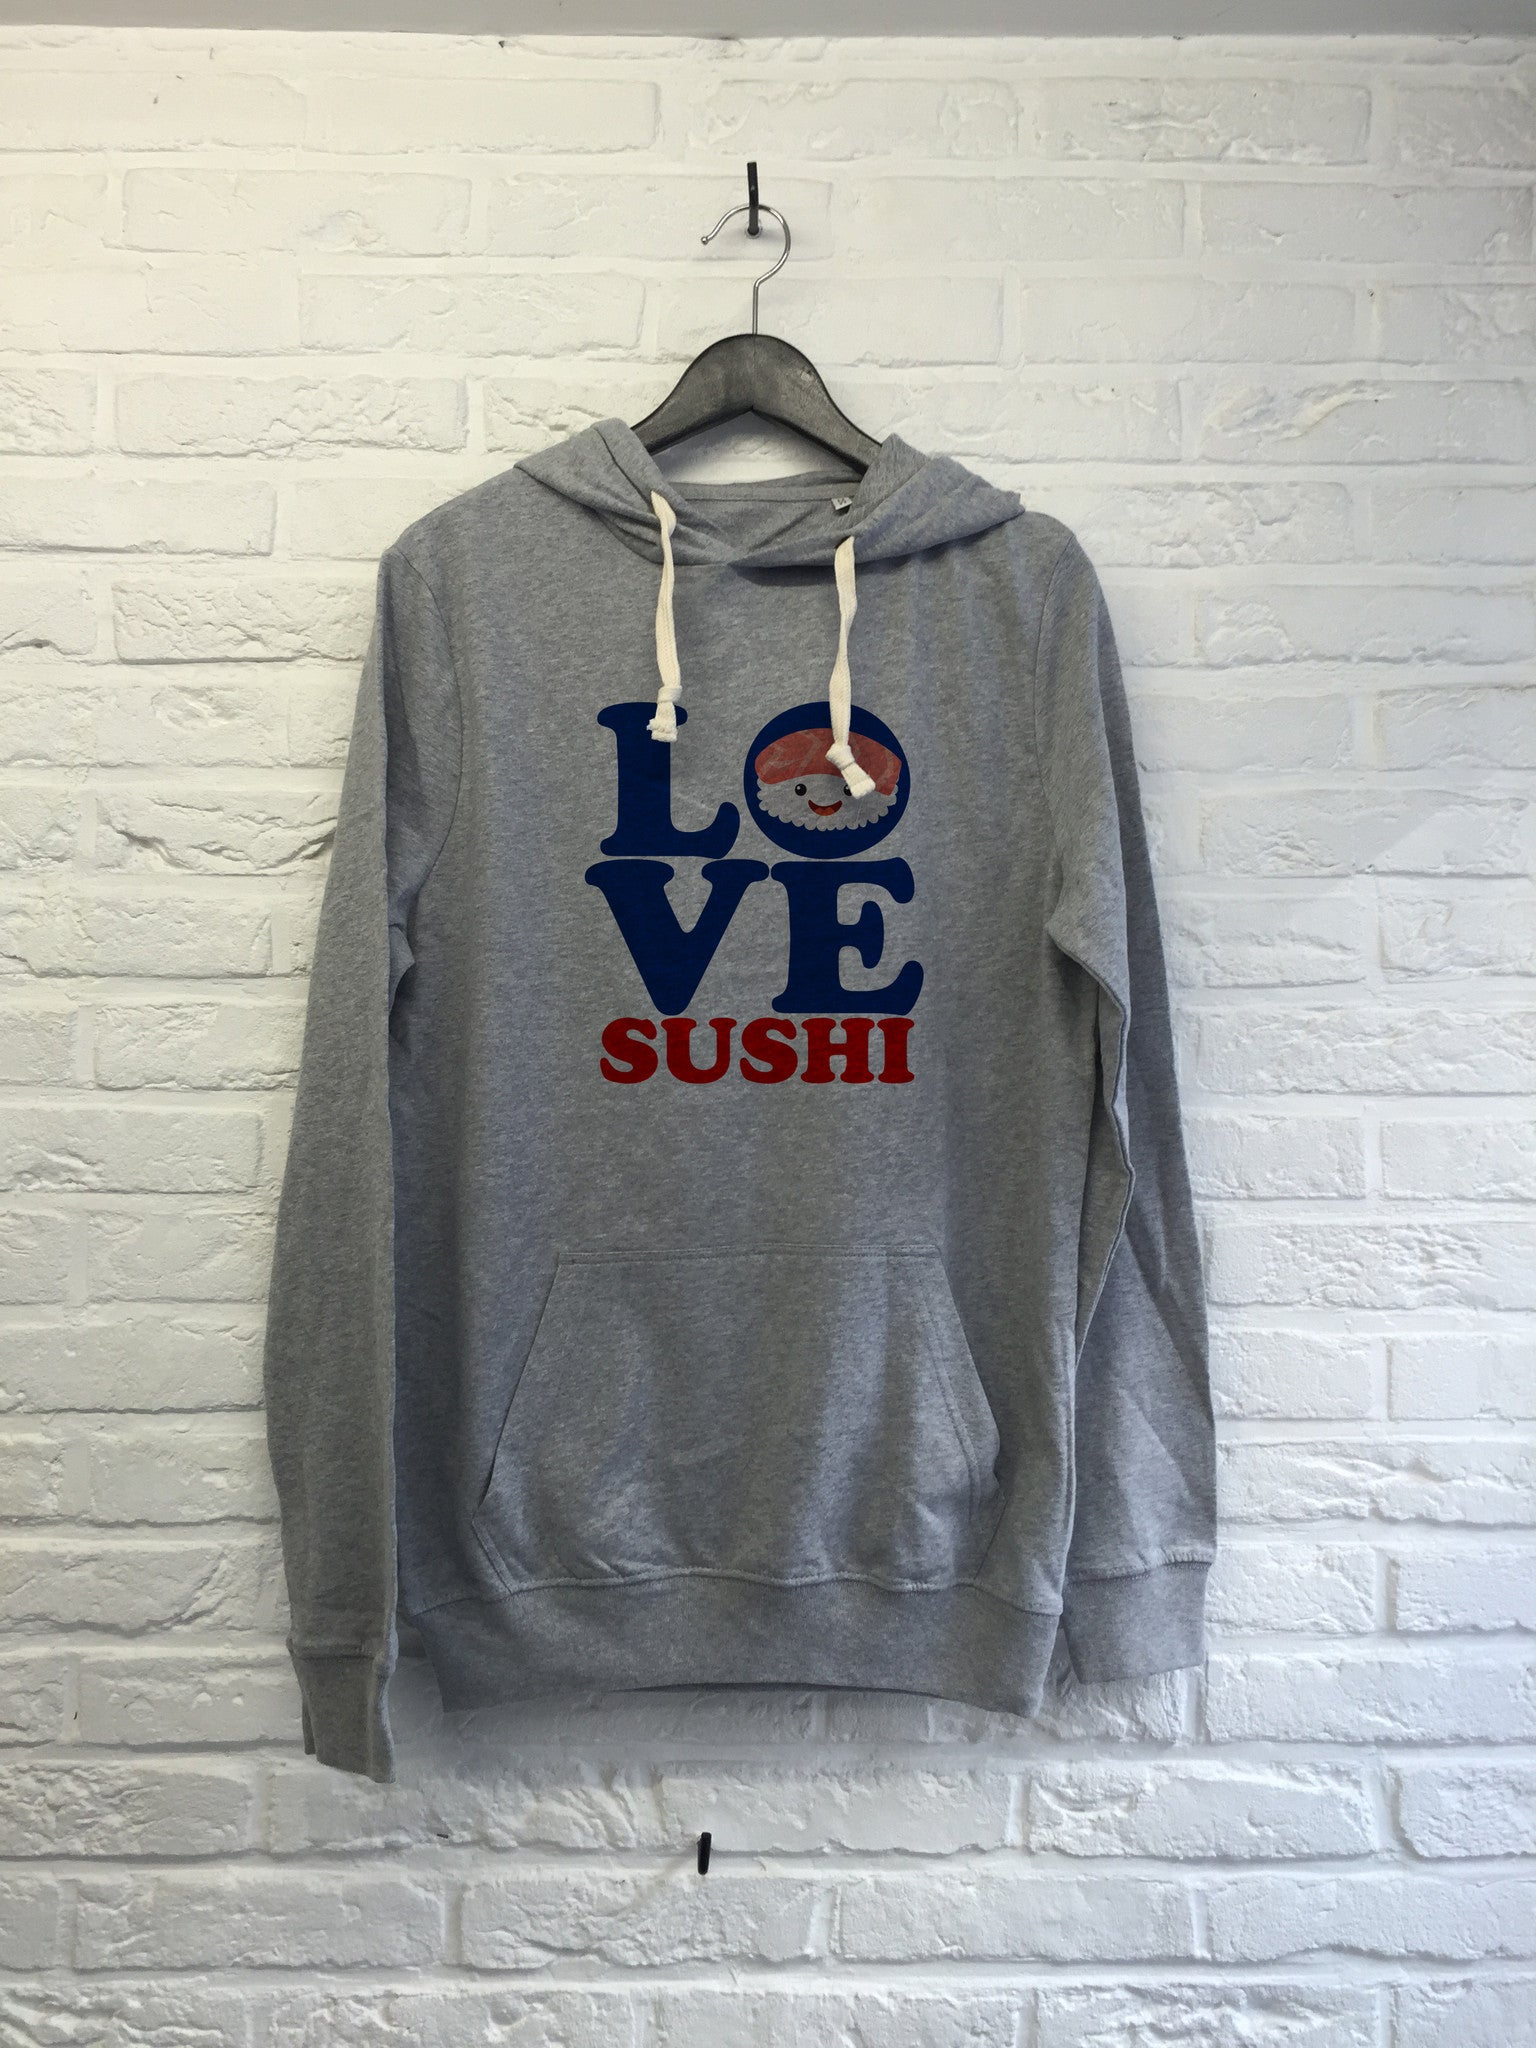 Love sushi - Hoodie super soft touch-Sweat shirts-Atelier Amelot